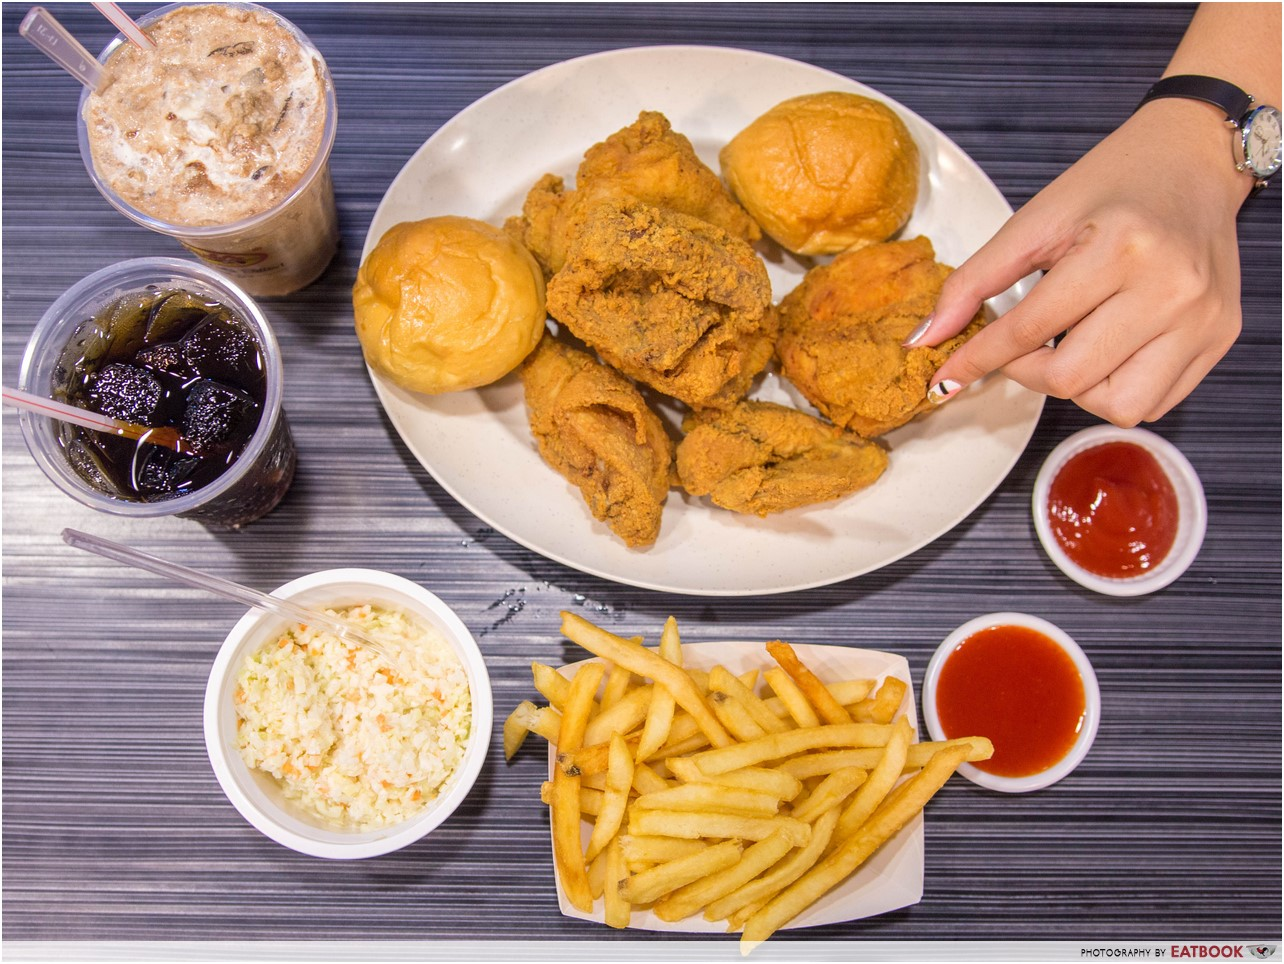 Arnold's fried chicken - 2 person combo